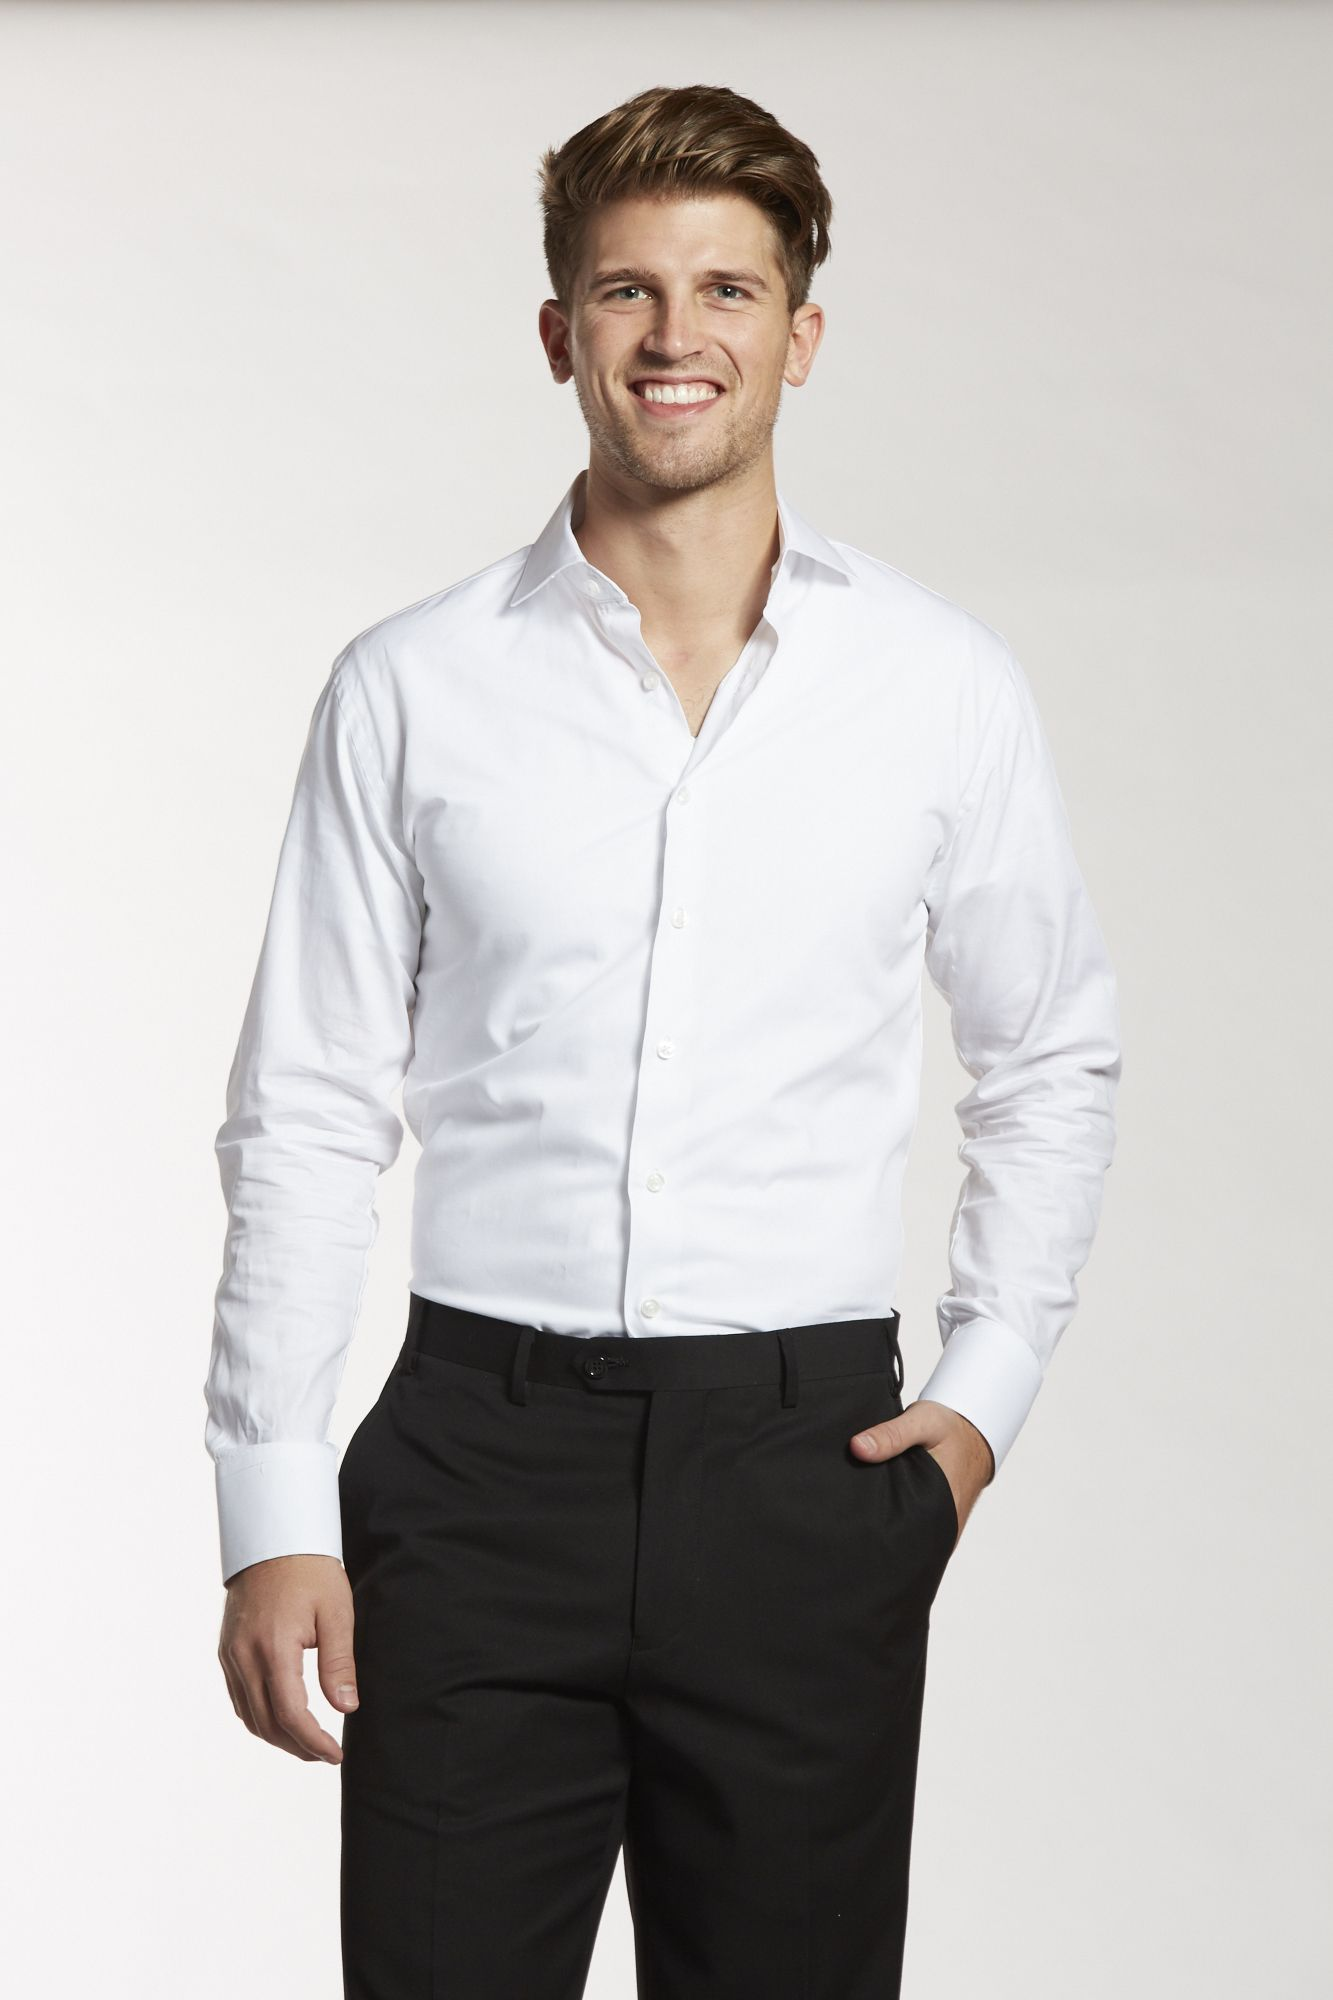 Undershirts For Men A Groomsman Guide On How To Wear An